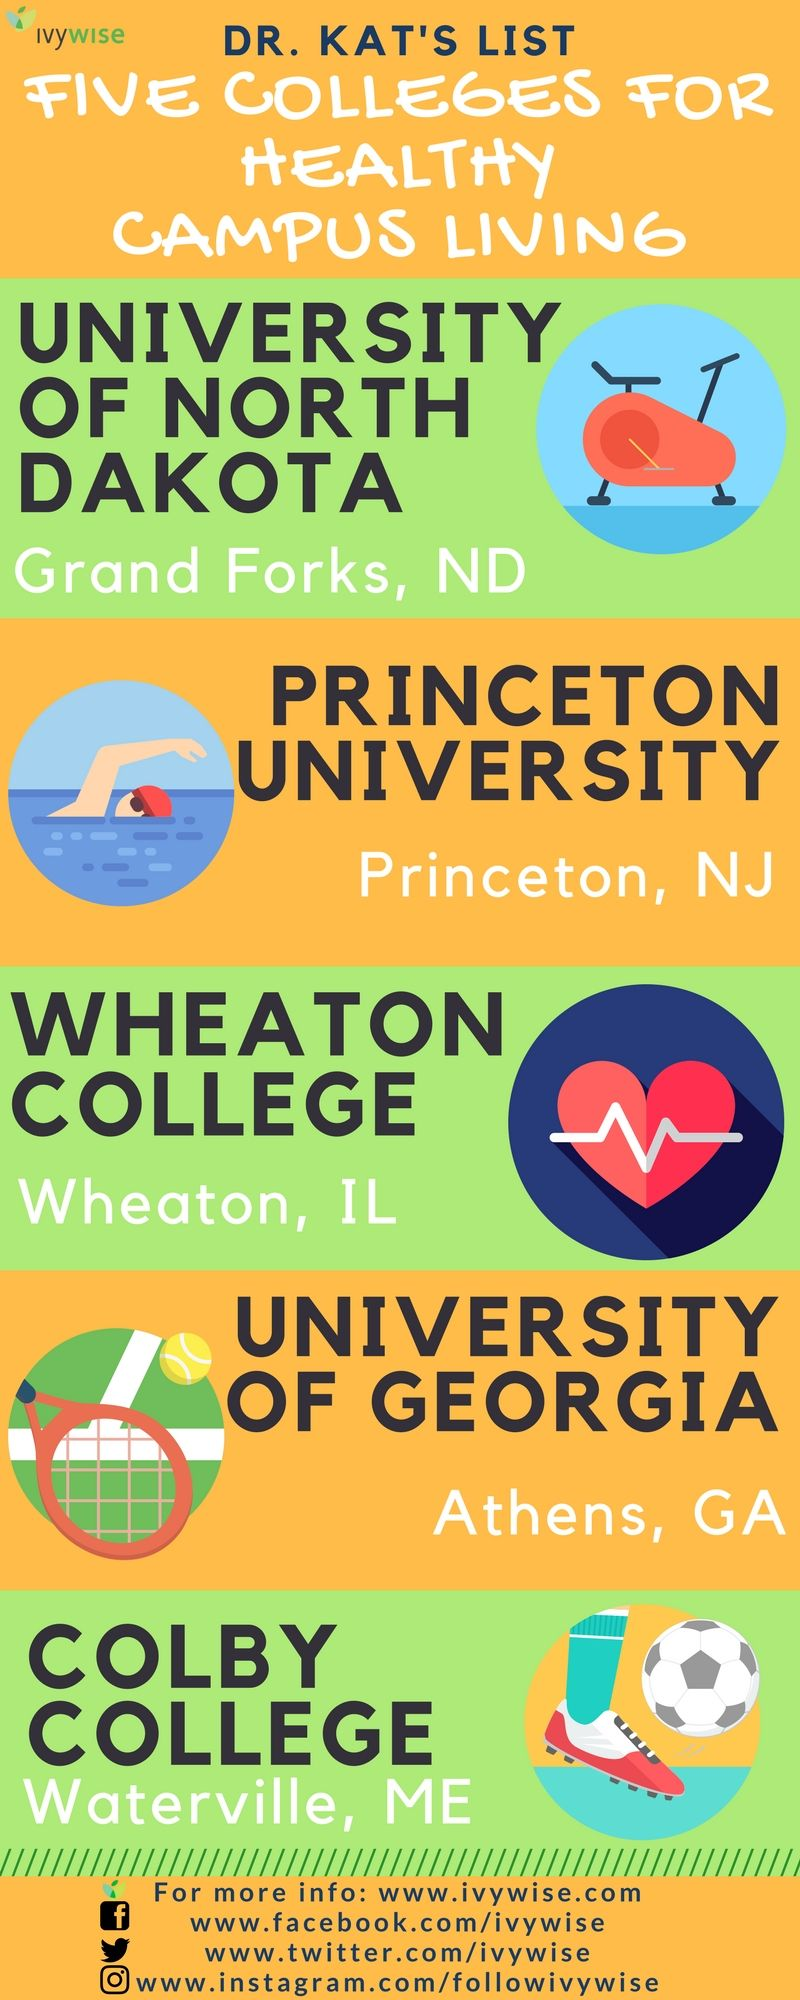 In Honor Of Nationalnutritionmonth Here S Dr Kat S List Of 5 Colleges For Healthy Campus Livin Writing Lessons Fun Fact Friday Critical Thinking Questions